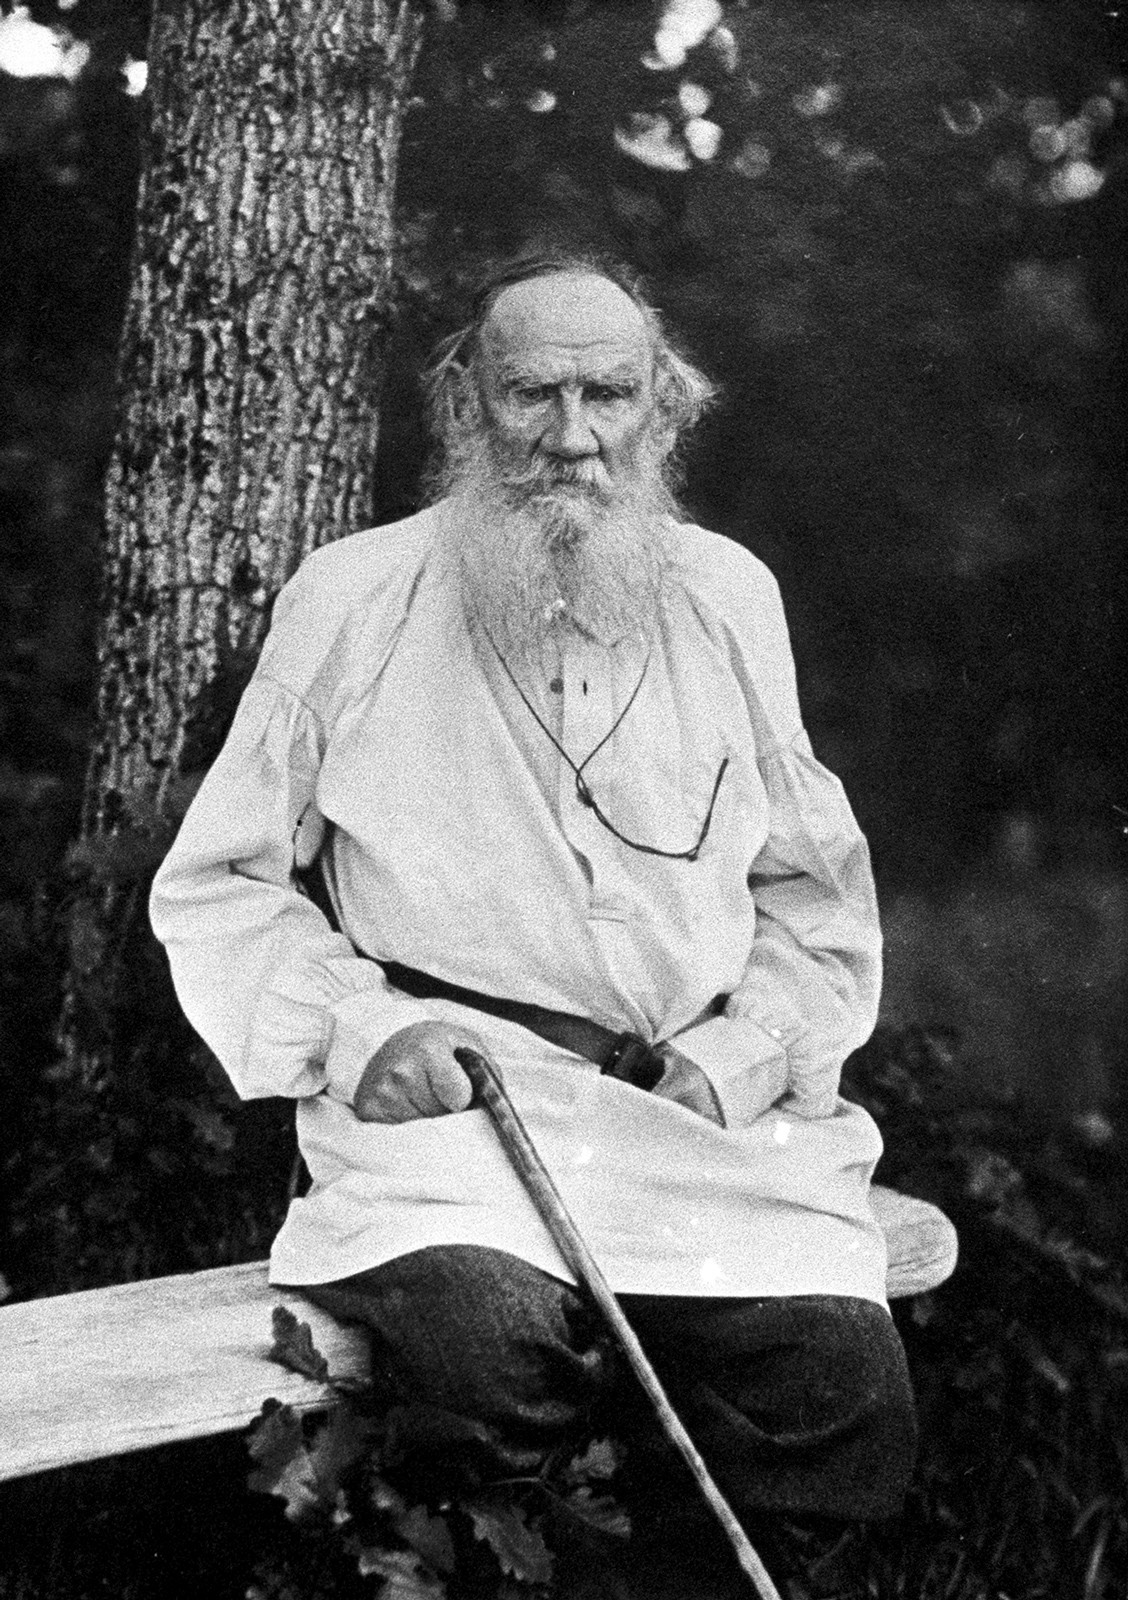 Leo Tolstoy dominated Russia's cultural and social life in the early 20th century.